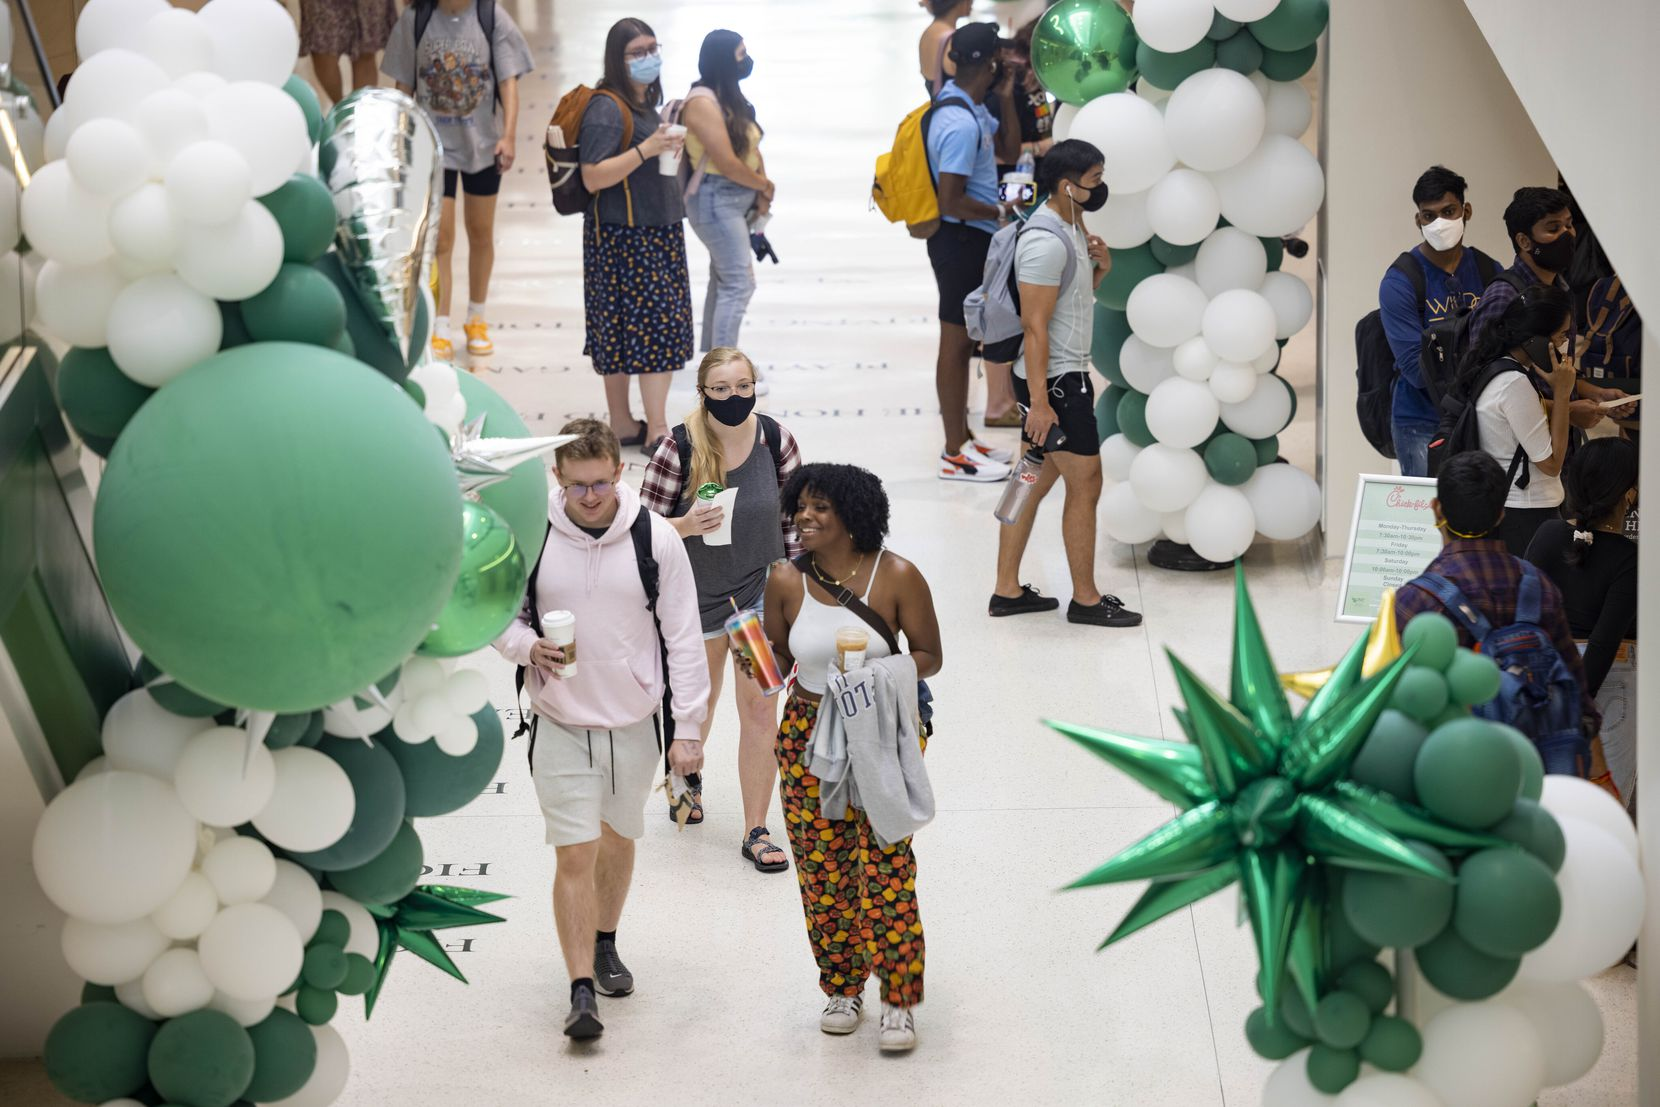 Students walk through the university union during the first day of class on Monday, Aug. 23, 2021, at the University of North Texas in Denton. (Juan Figueroa/The Dallas Morning News)